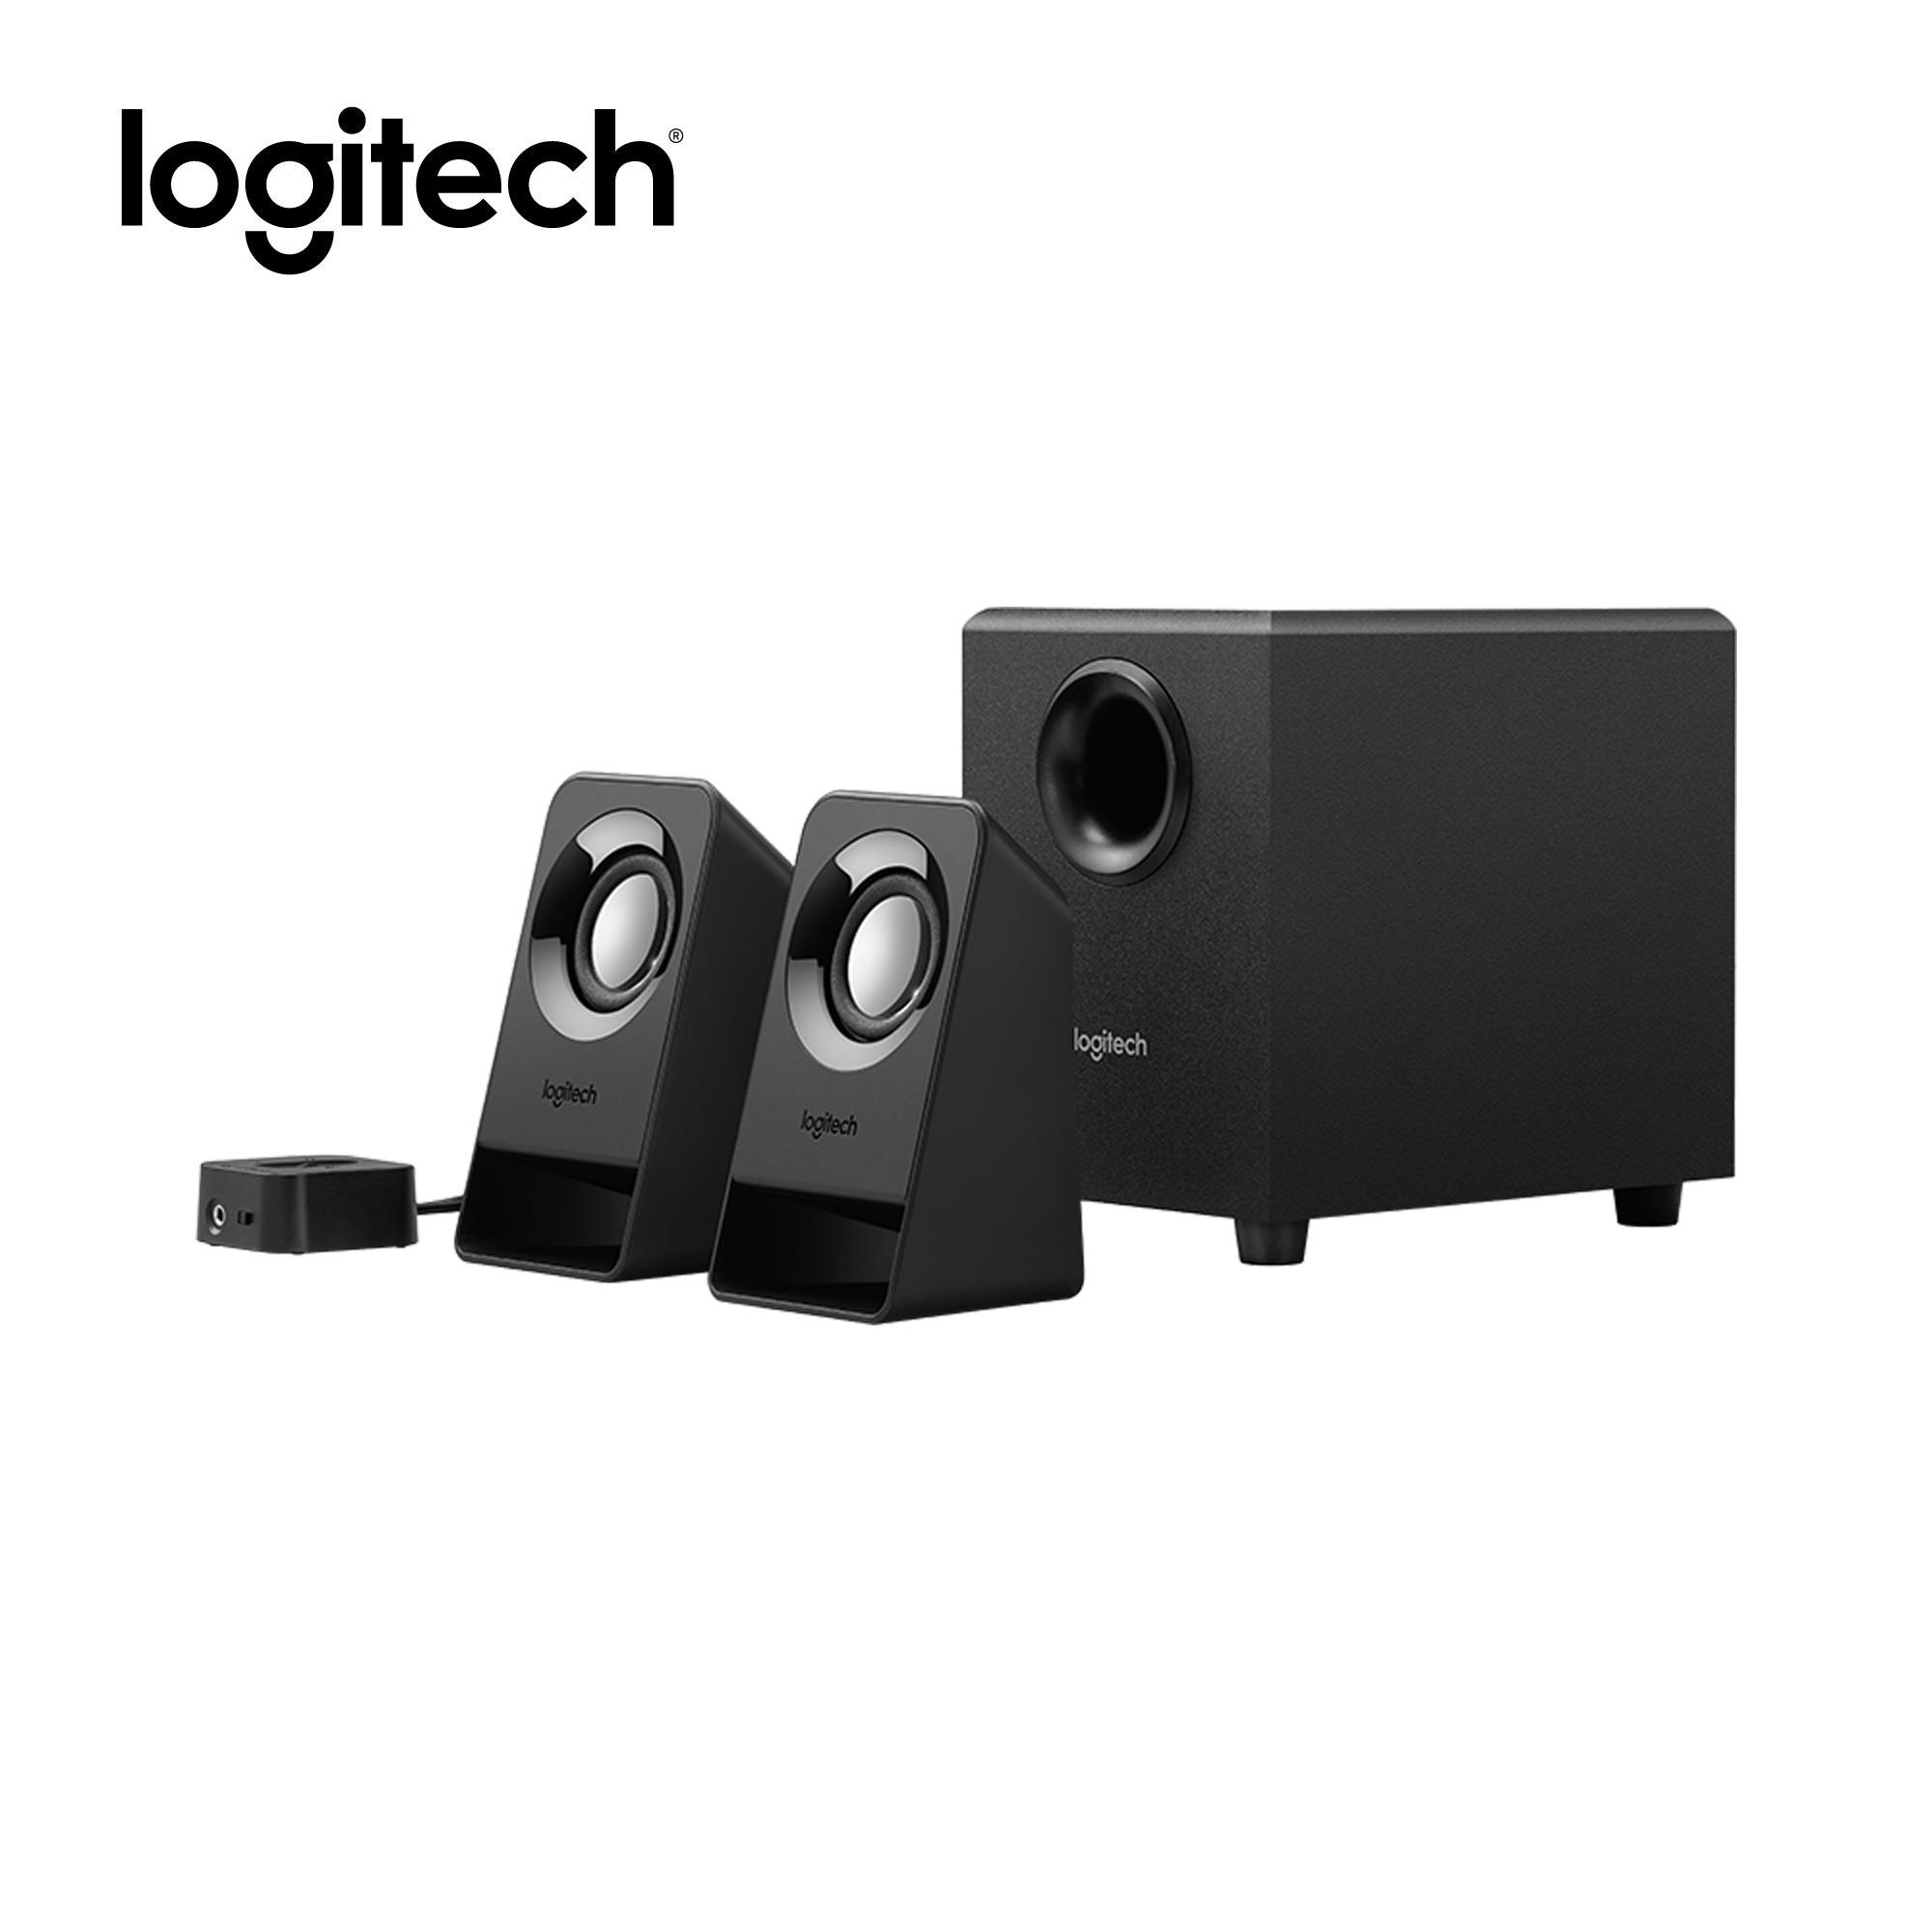 hight resolution of logitech z213 compact 2 1 stereo speaker system 3 5mm connection 14watts peak 7watts